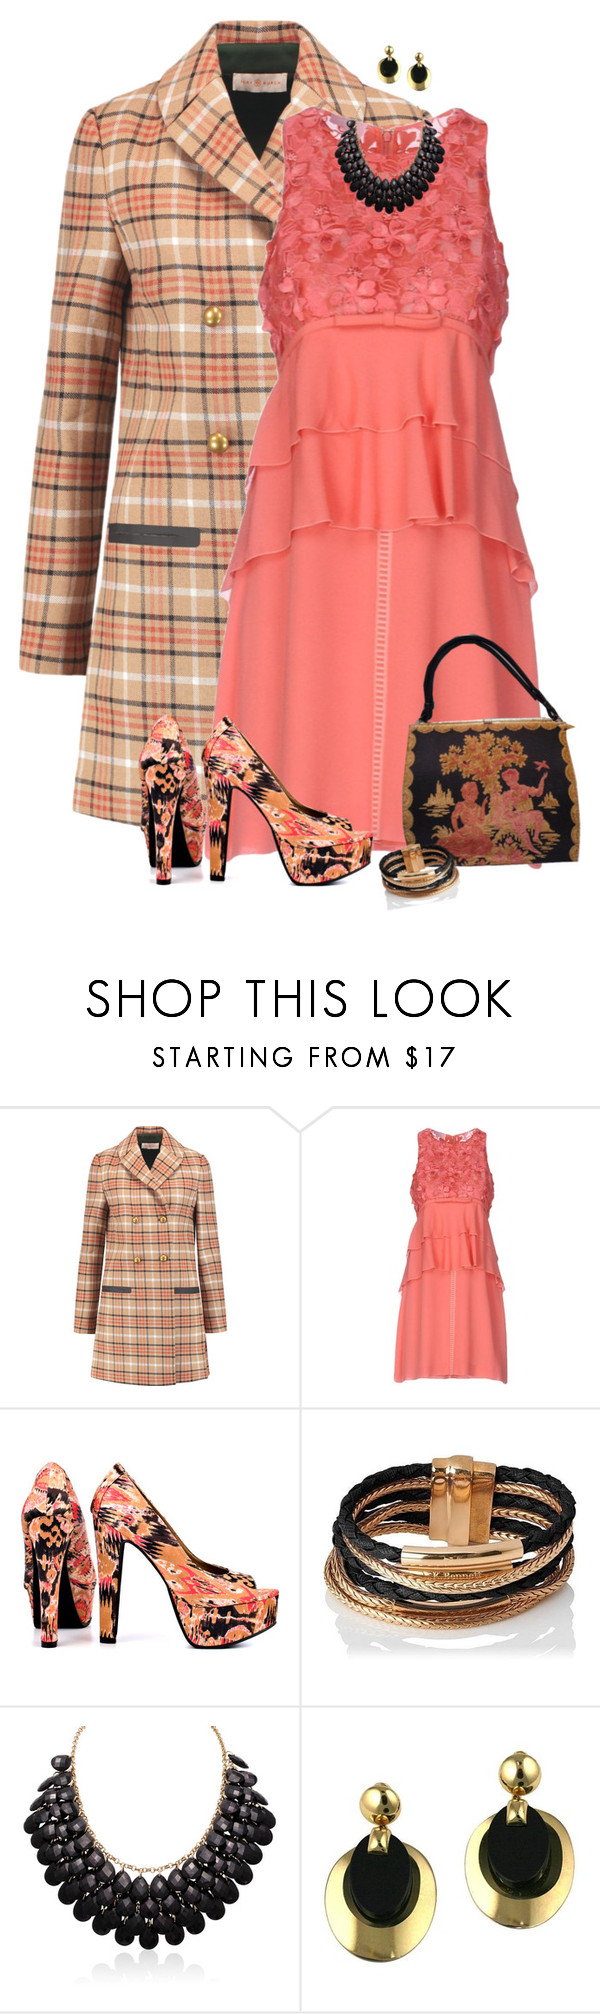 """Shelly"" by dkelley-0711 ❤ liked on Polyvore featuring Tory Burch, Giamba, Michael Antonio, L.K.Bennett, Adoriana, Christian Dior, ToryBurch, Dior, polyvoreeditorial and plaidcoats"